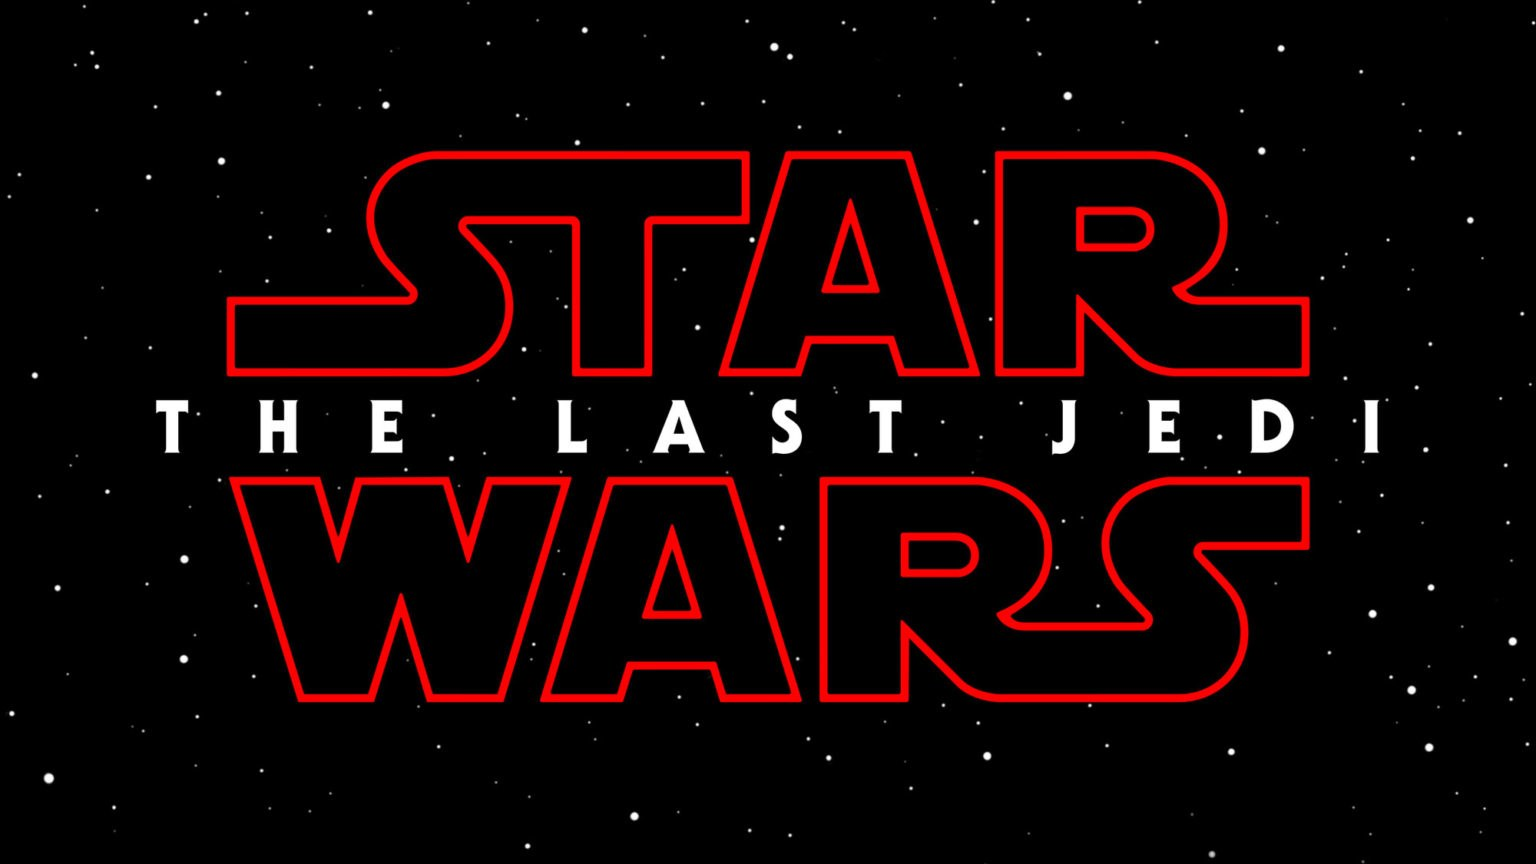 The Logo for Star Wars: The Last Jedi is red. We have a bad.